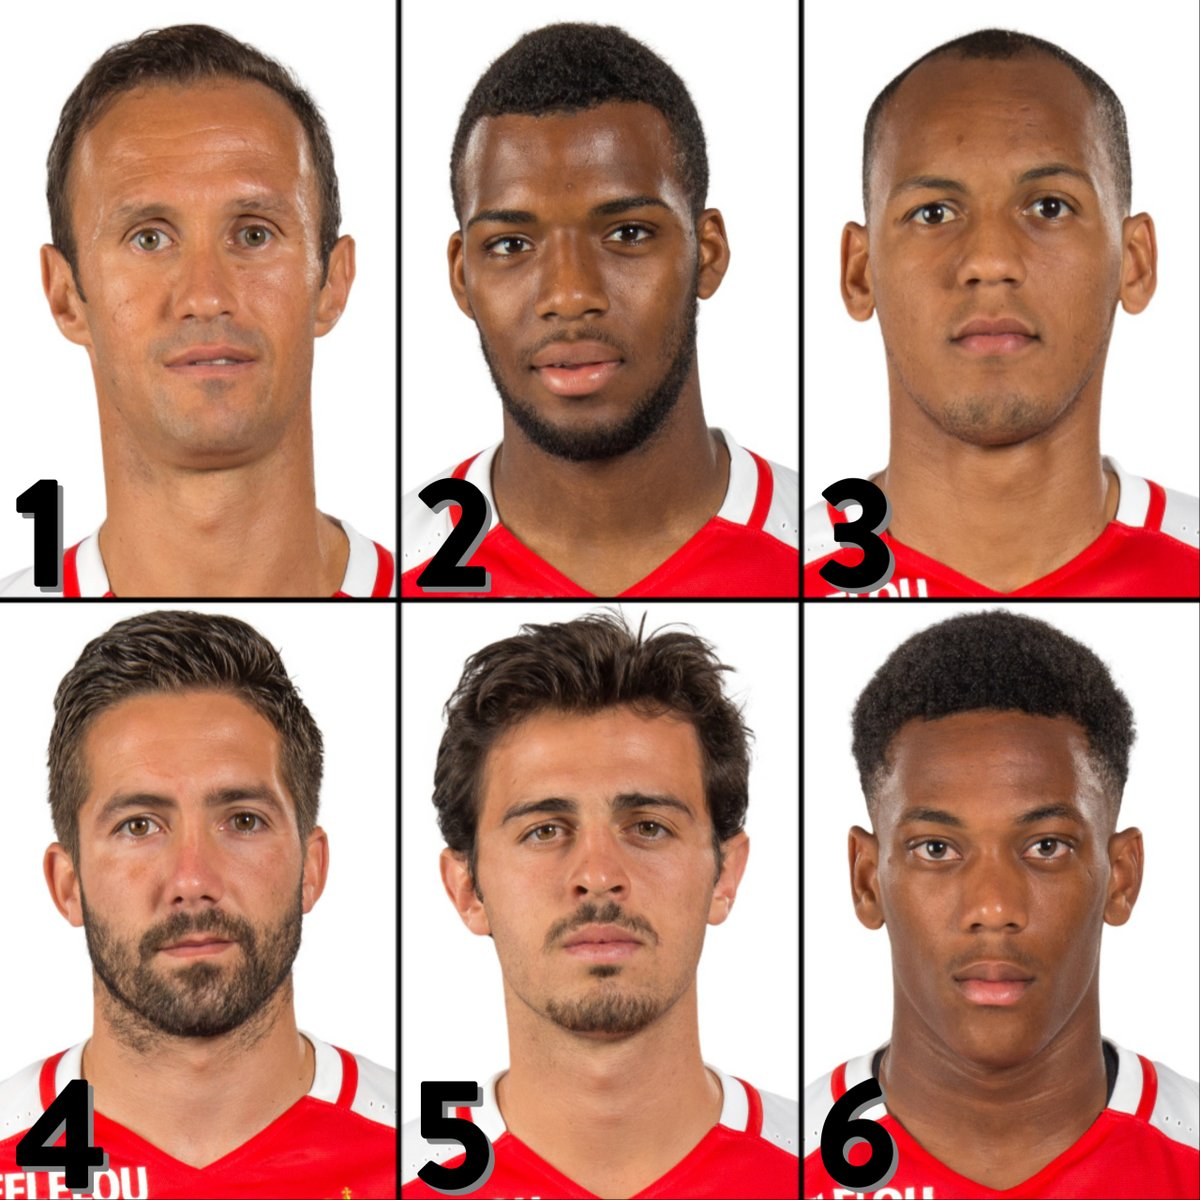 Favourite Monaco star from 2015/16❓  1⃣ Carvalho 2⃣ Lemar 3⃣ Fabinho 4⃣ Moutinho 5⃣ Bernardo Silva 6⃣ Martial  #UEL | @AS_Monaco https://t.co/8KiTew4c1p